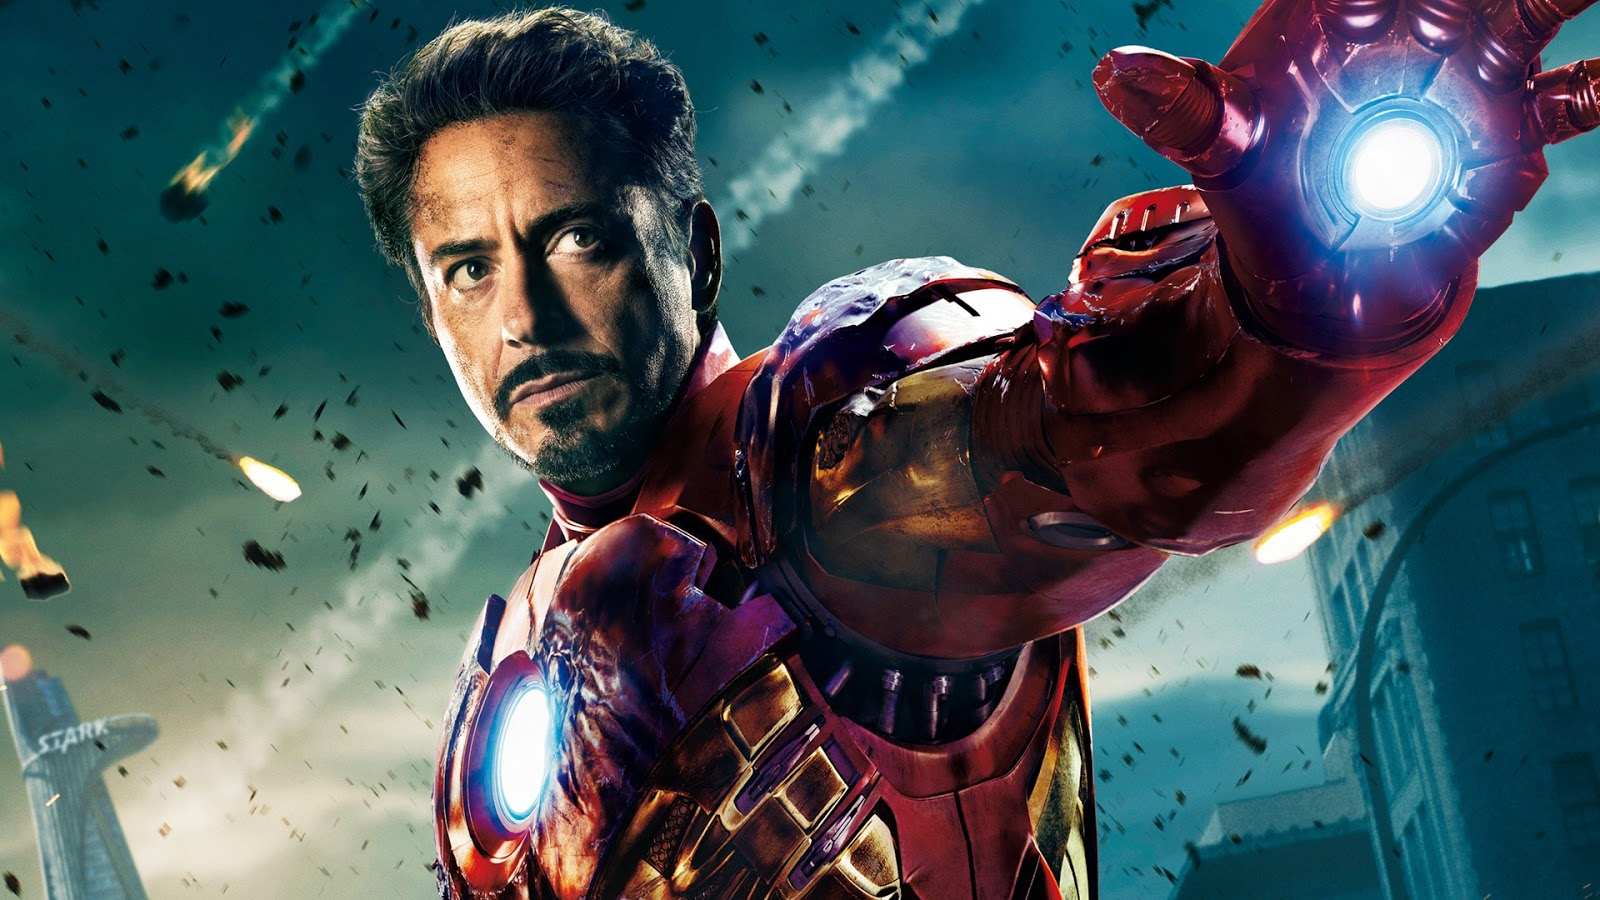 Awesome Iron Man Pictures HD Widescreen